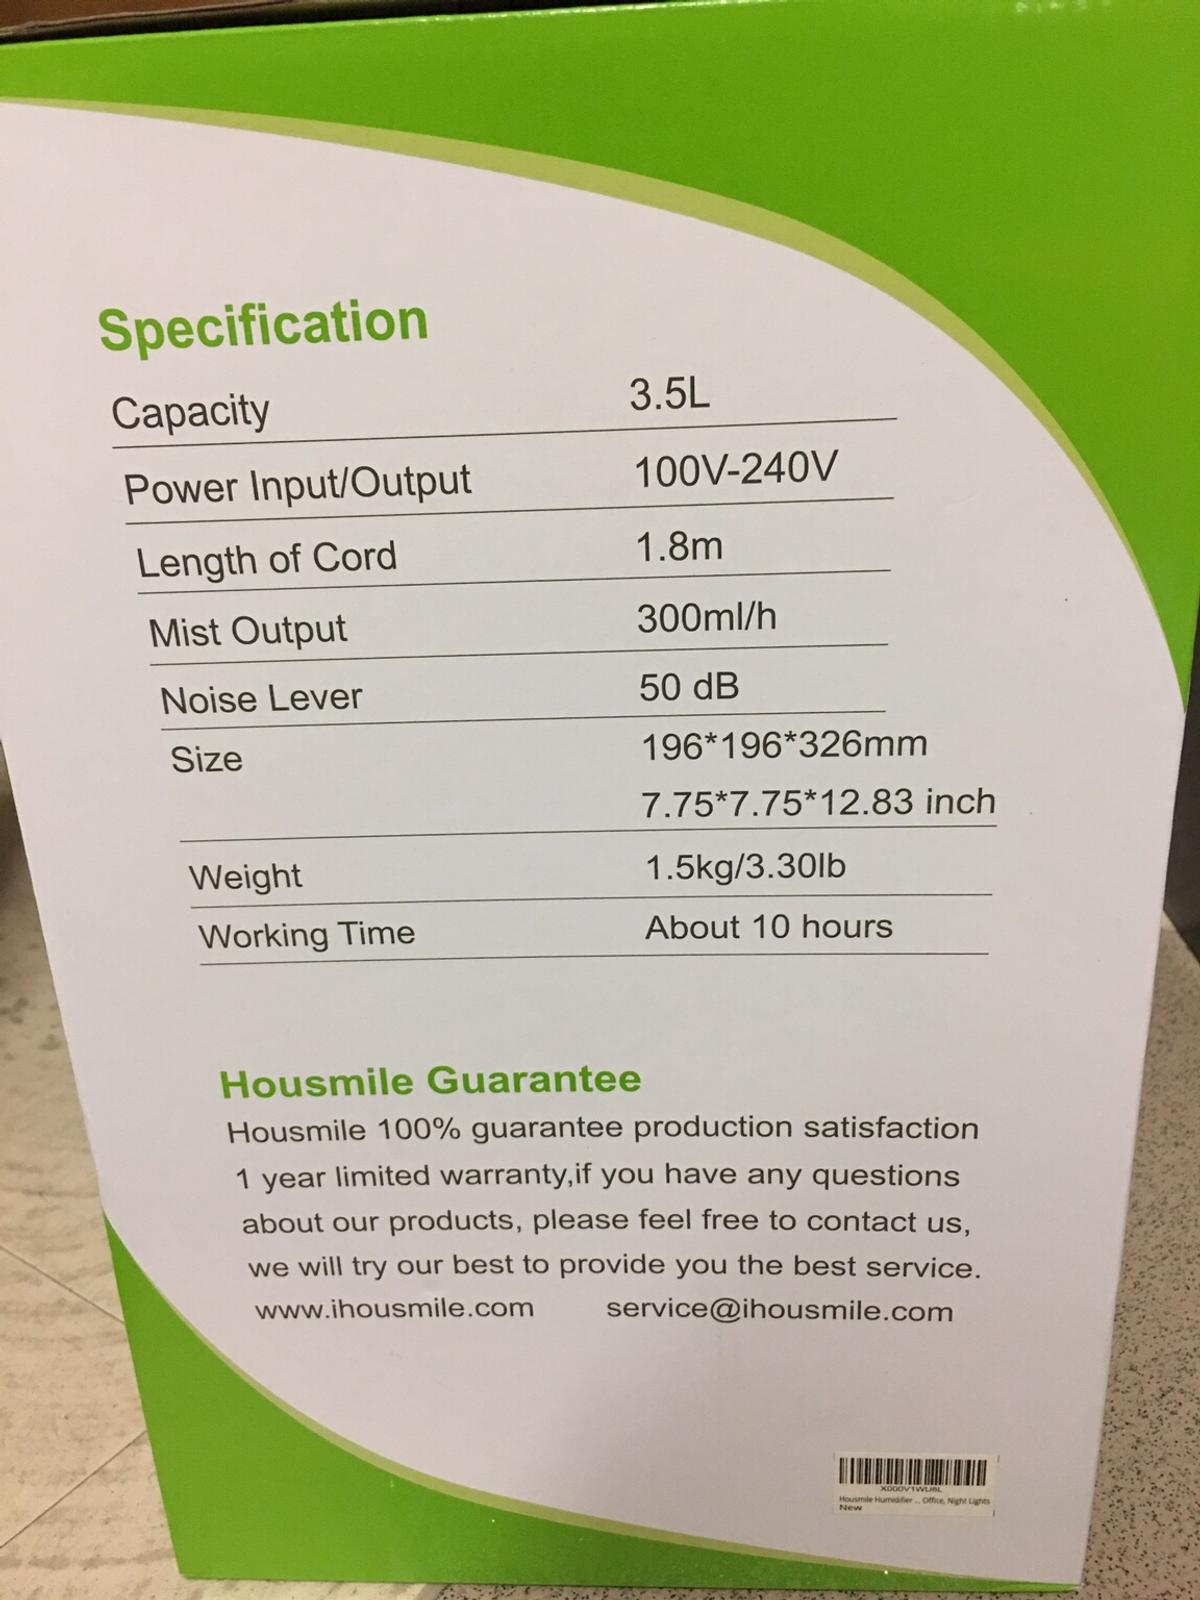 Humidifier in SE15 1NQ 伦敦 for £45.00 for sale | Shpock